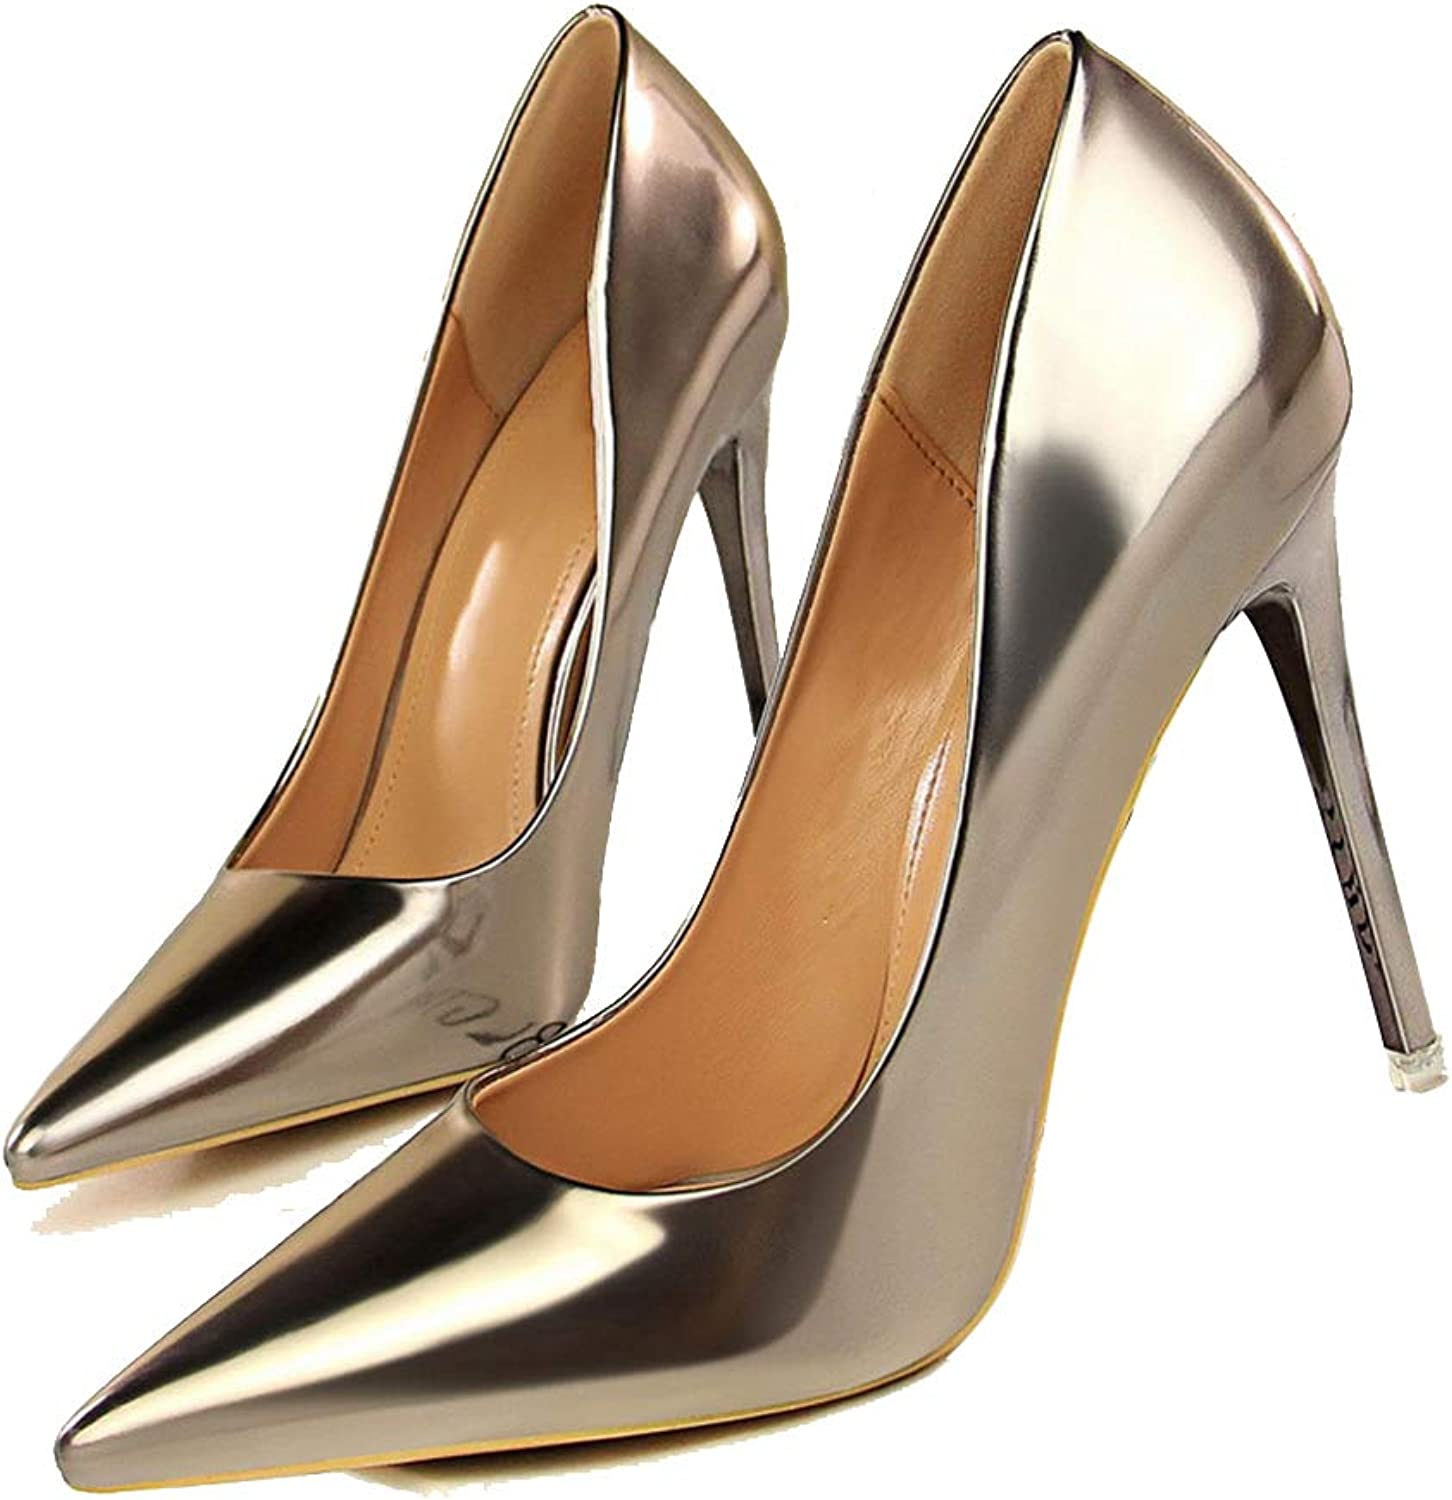 Womens Pumps Shallow Mouth Pointed-Toe Wedding Party Evening Dress High Heels